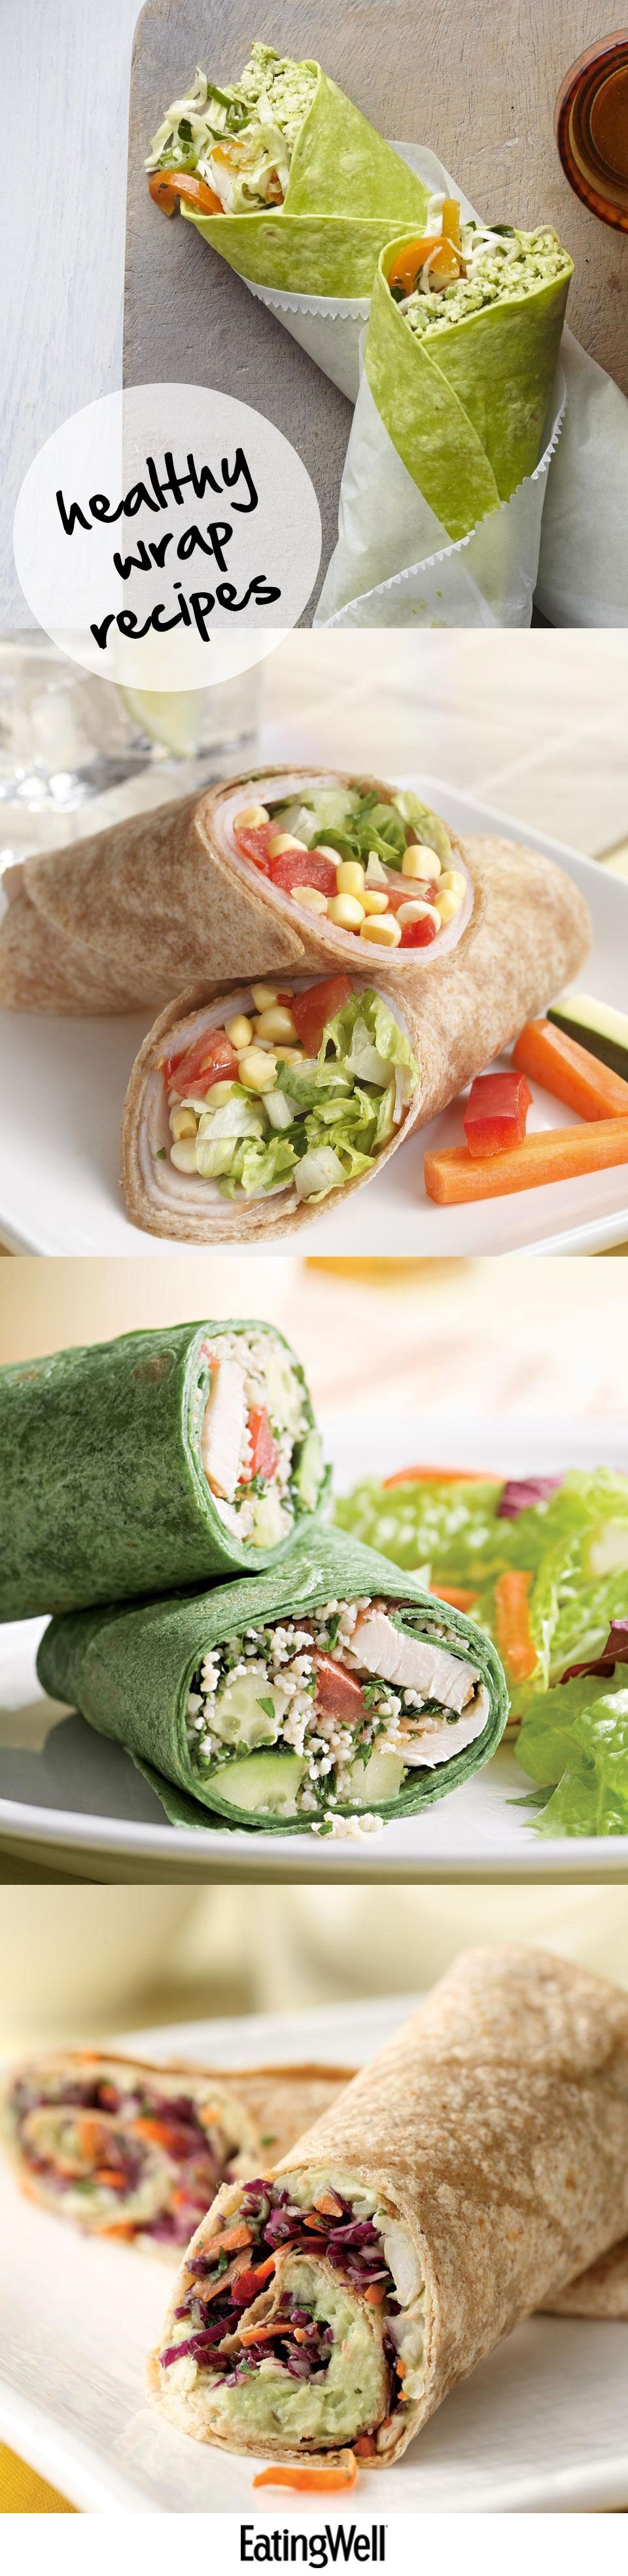 Healthy Wrap Roll Recipes Wraps Recipes Healthy Cheap Healthy Lunch Wrap Recipes